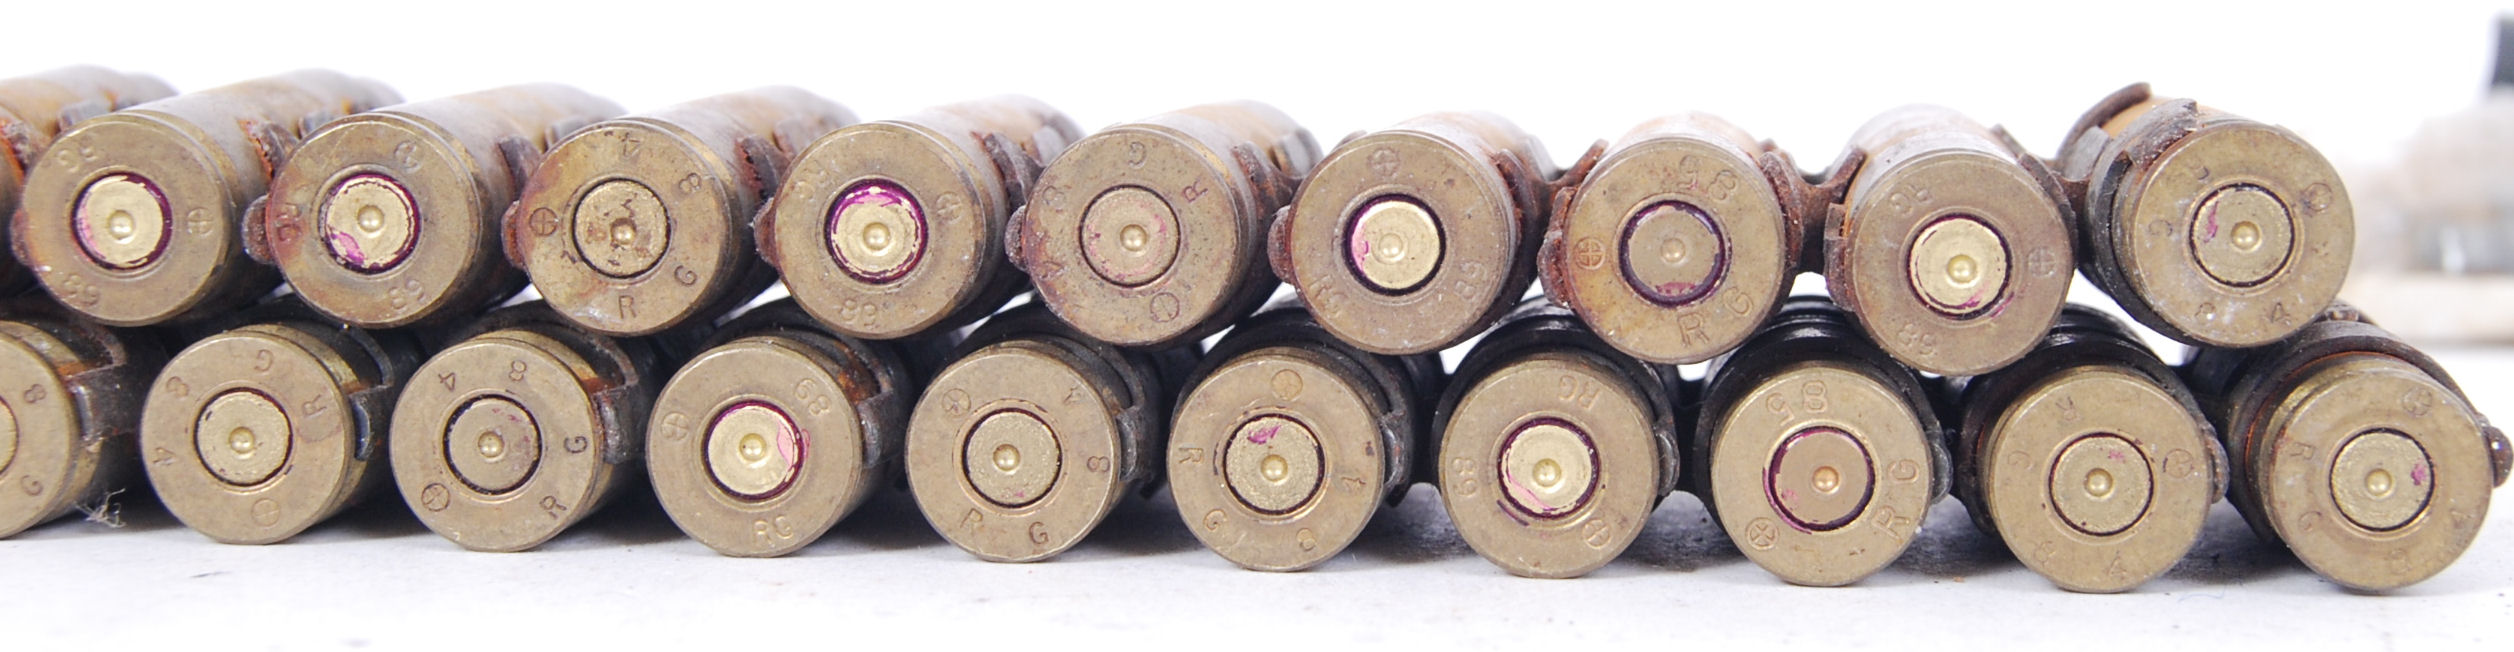 Lot 36 - ROUND OF CARTRIDGES